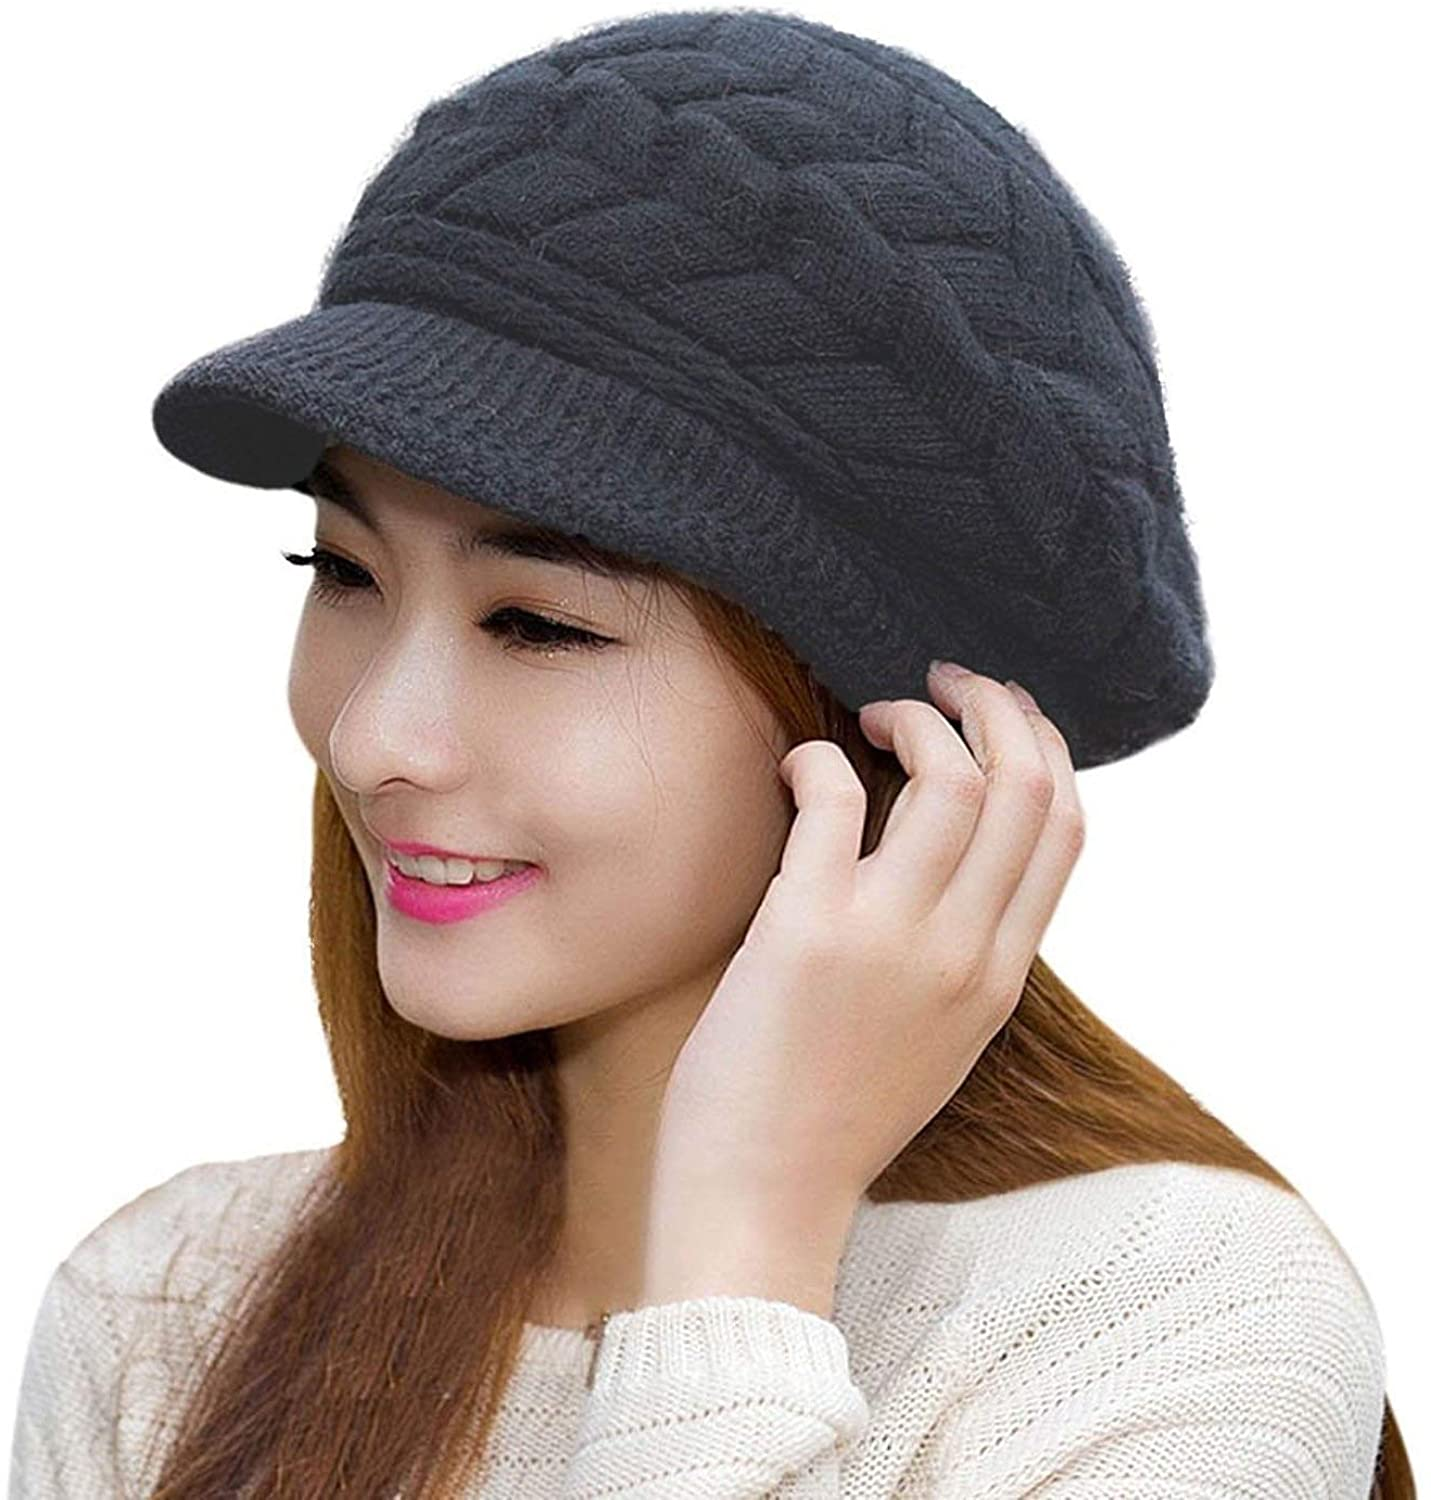 hats for women